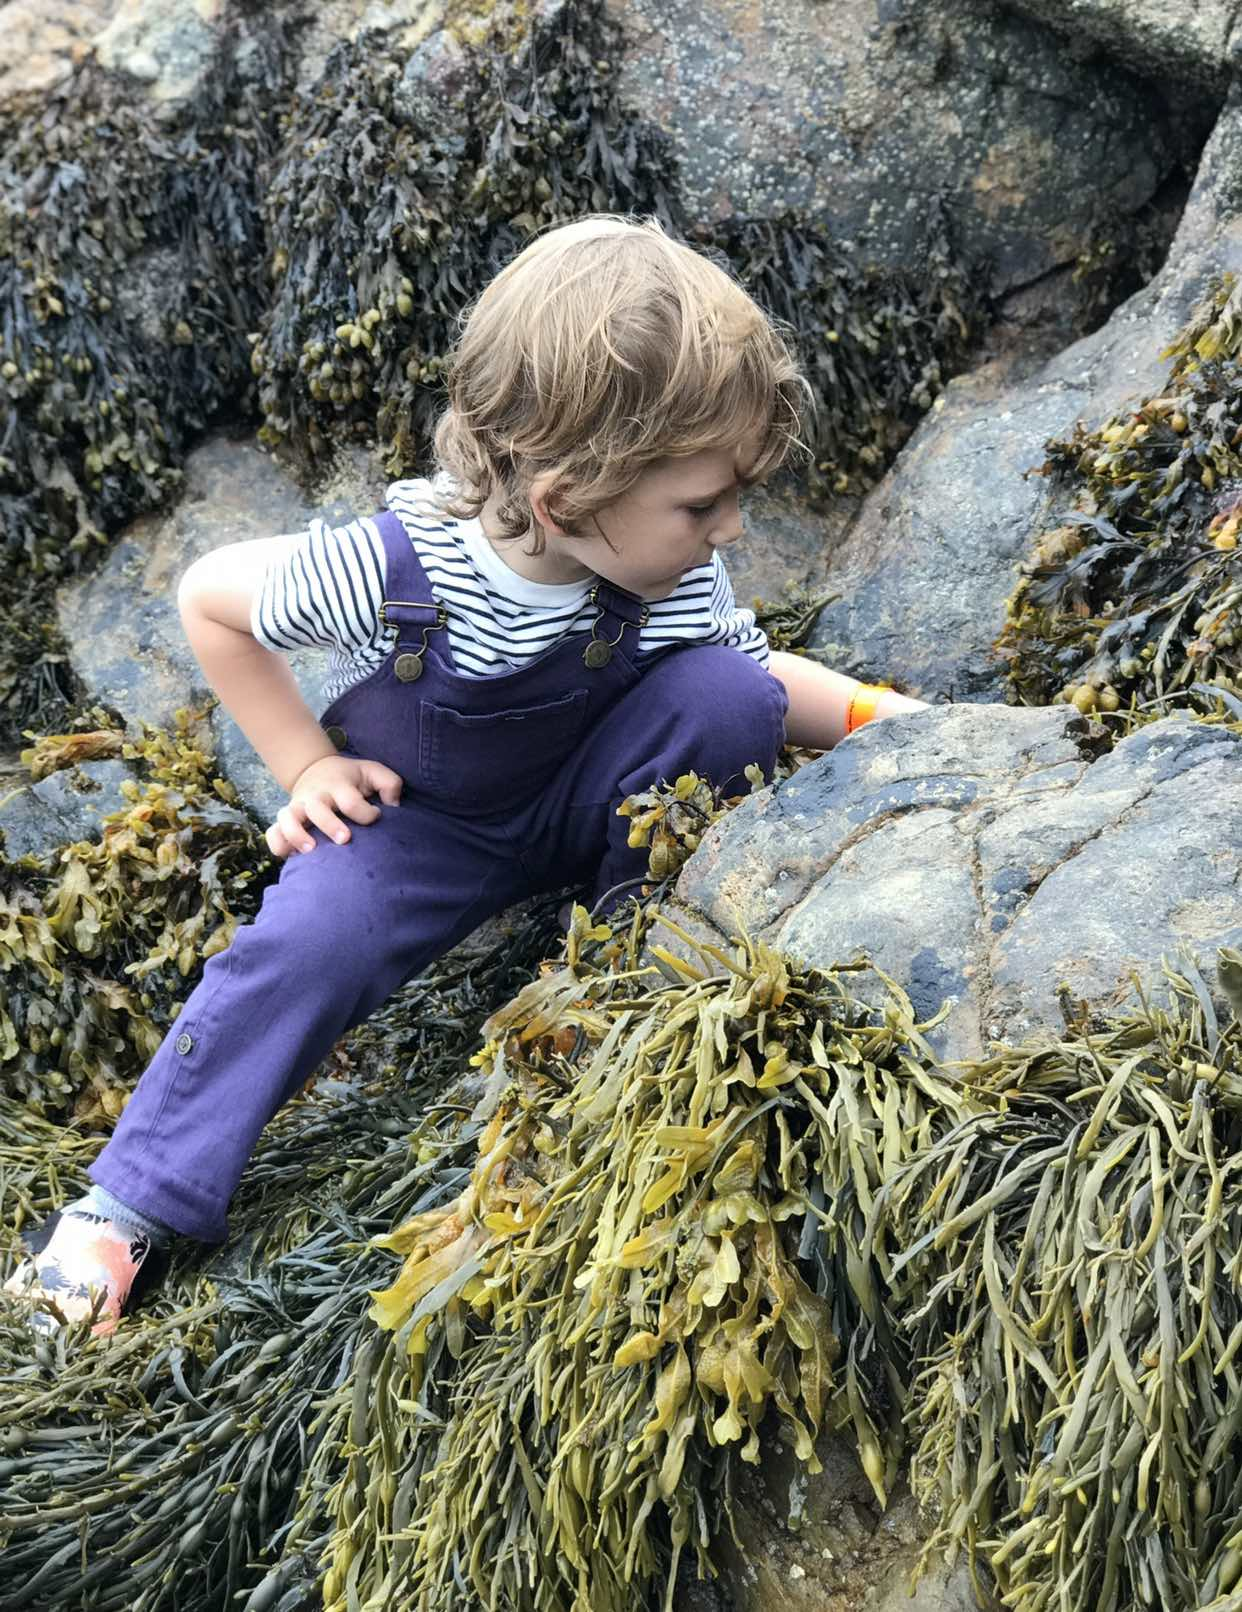 Why North Wales is a Great Family Holiday Destination | Haven Holidays, IMG 0254%, product-review%